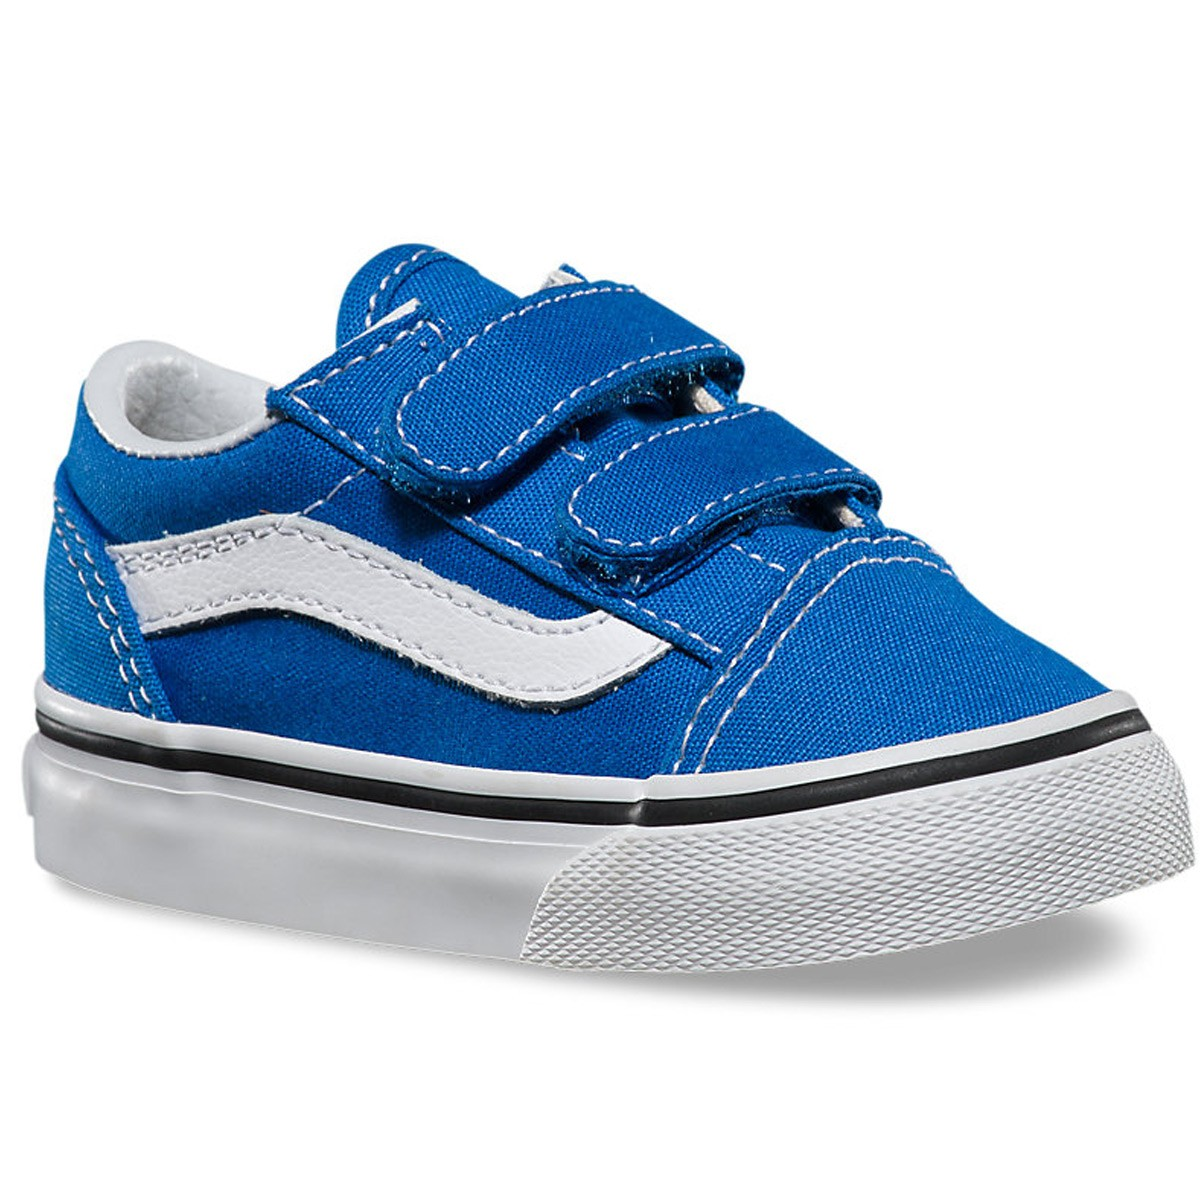 Vans Old Skool Toddler Little Shoes